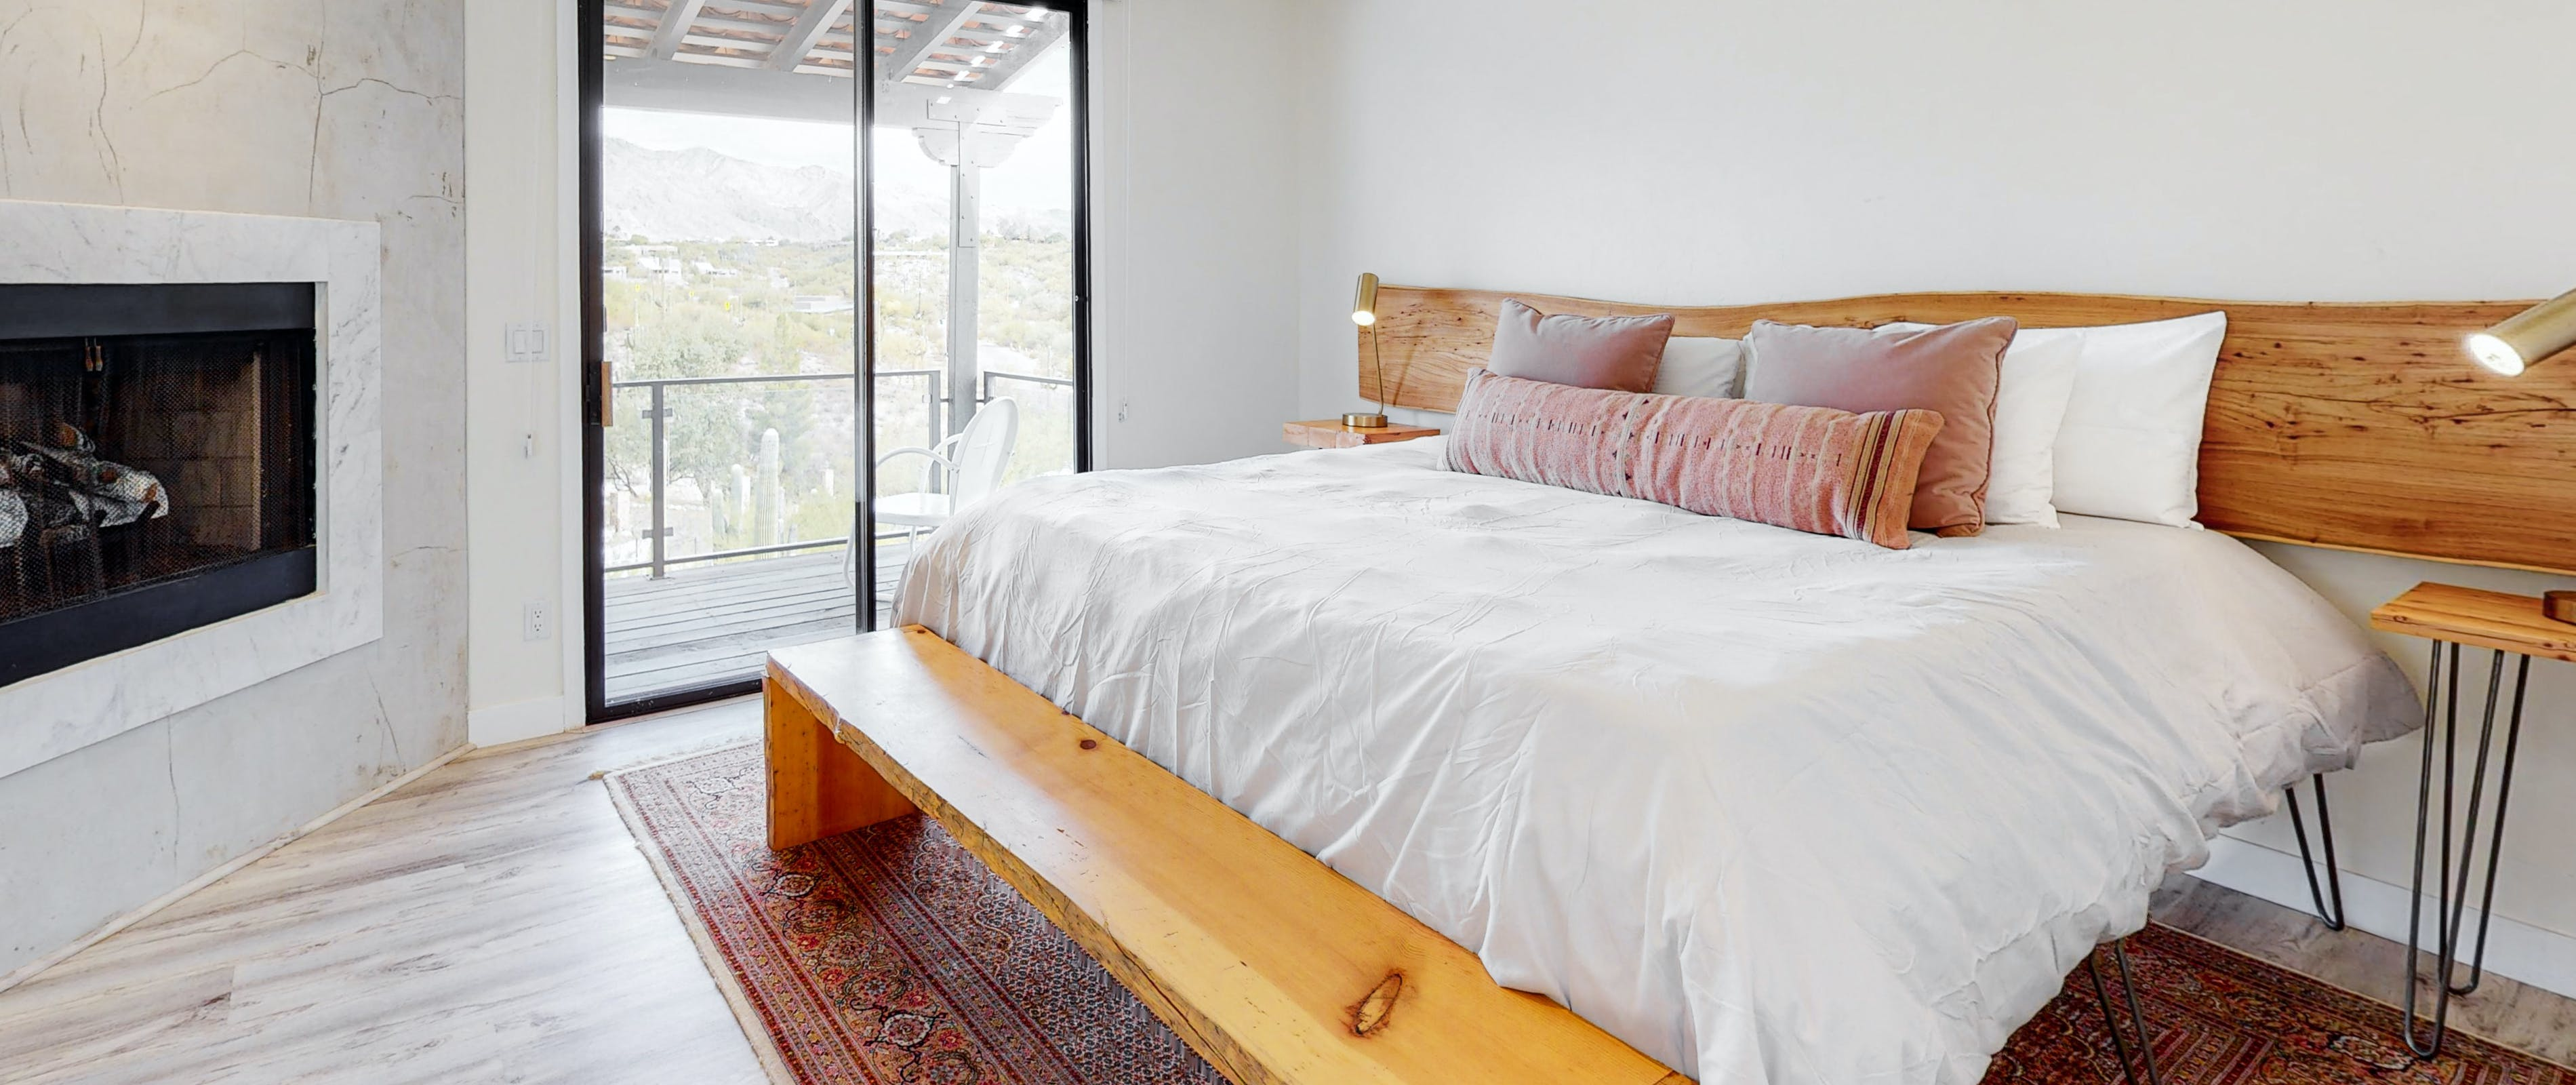 Inside a Tucson, AZ vacation rental bedroom with a white bed, wooden style furniture and fireplace.